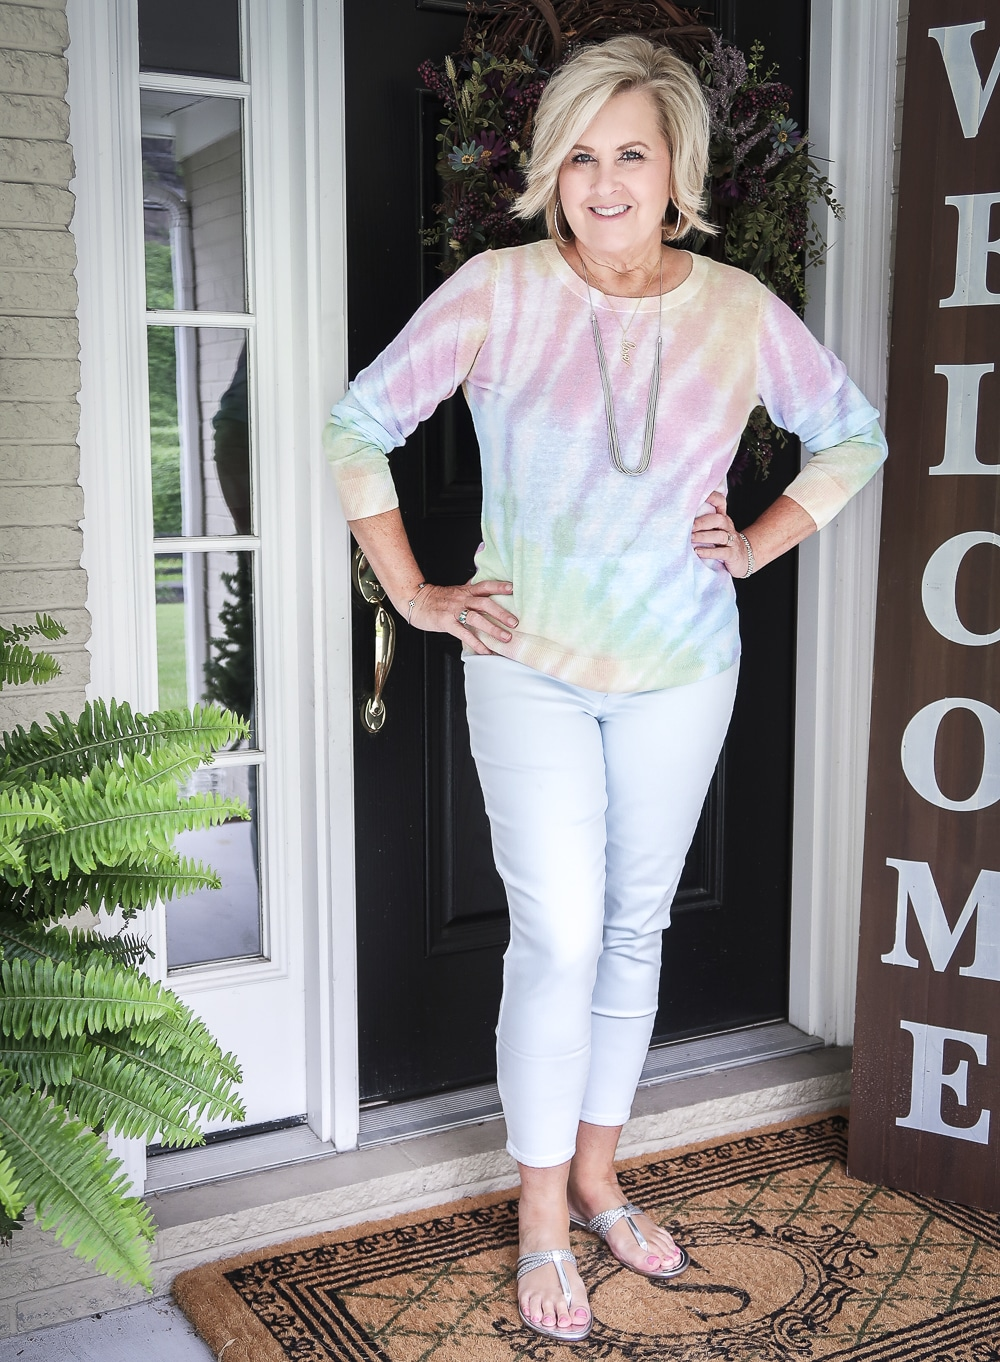 Fashion Blogger 50 Is Not Old is wearing a gorgeous tie-dye sweater with pale blue pants and silver braided sandals